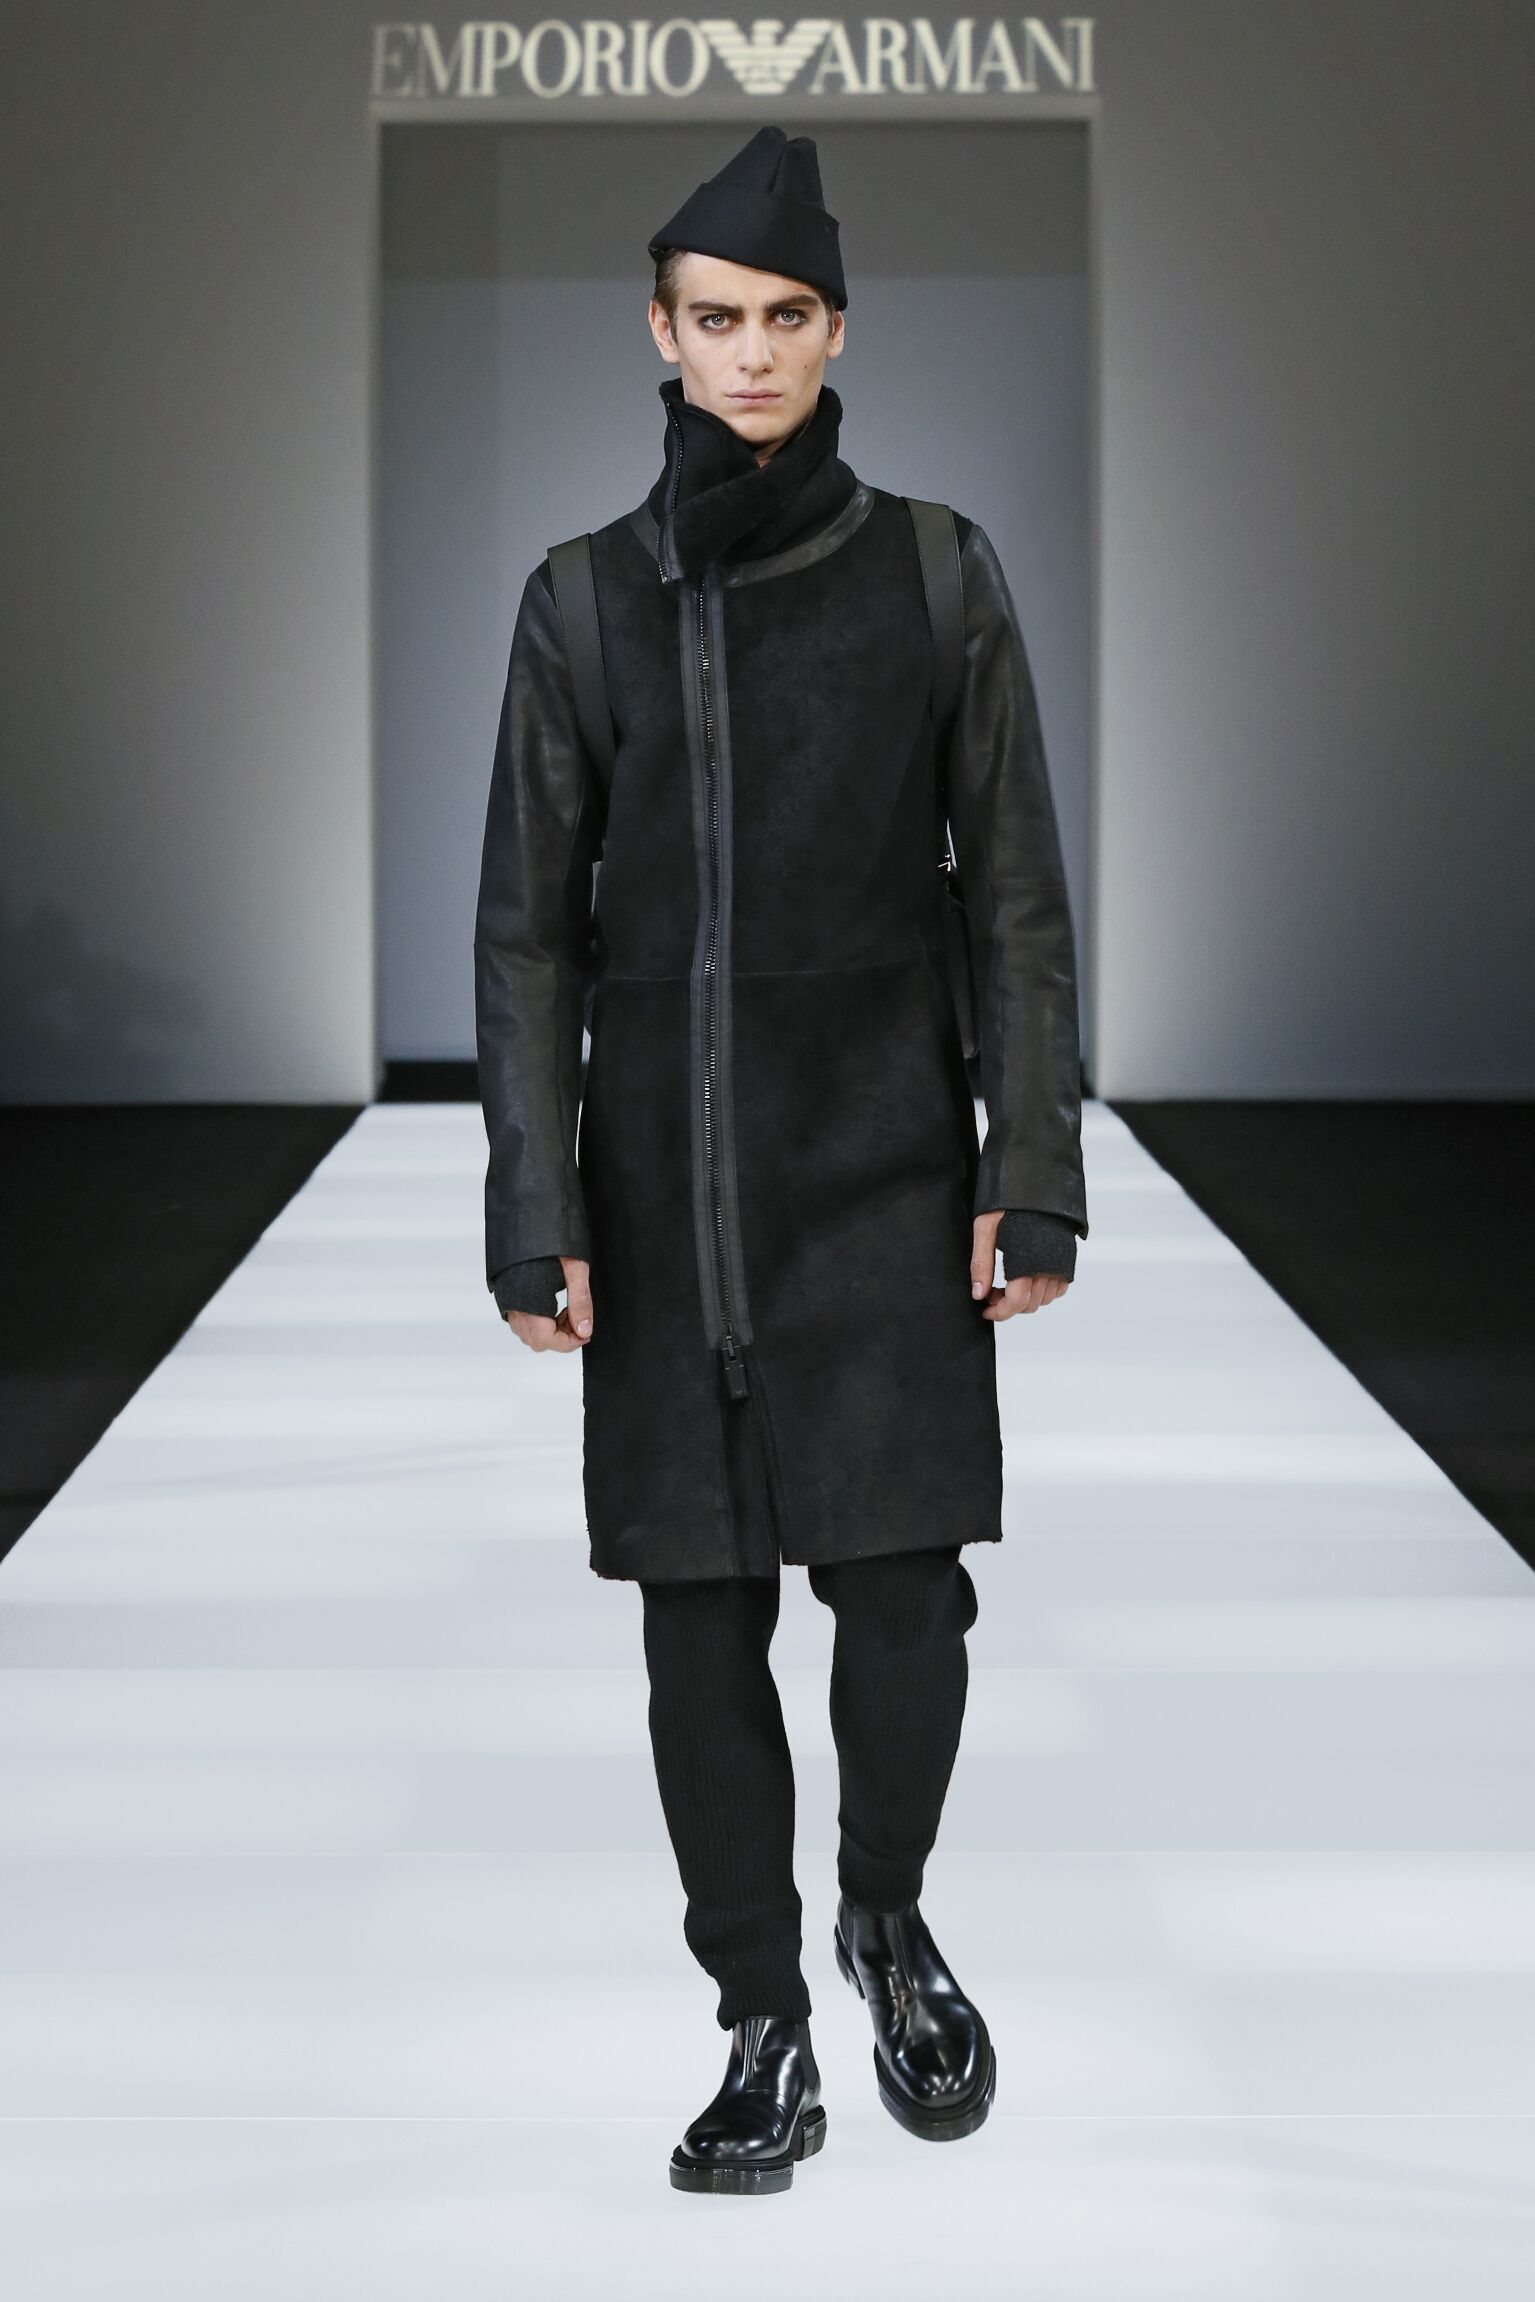 Winter Fashion Trends 2015 2016 Emporio Armani Collection